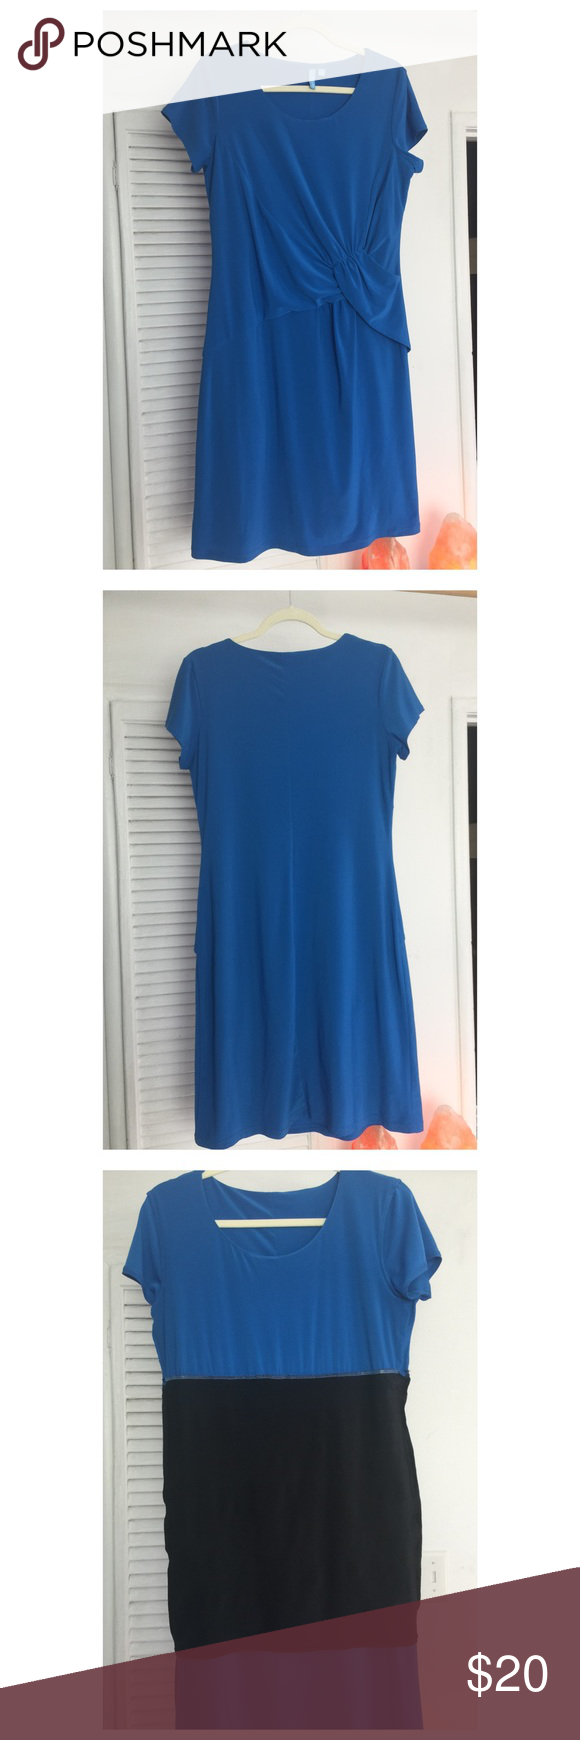 "Slimming dress This is a form fitting dress. Fits above the knee and have capped sleeves. The dress has a built in ""spanx"" technology to help smooth anything around the belly and behind. The dress is new without tags. b-slim Dresses"